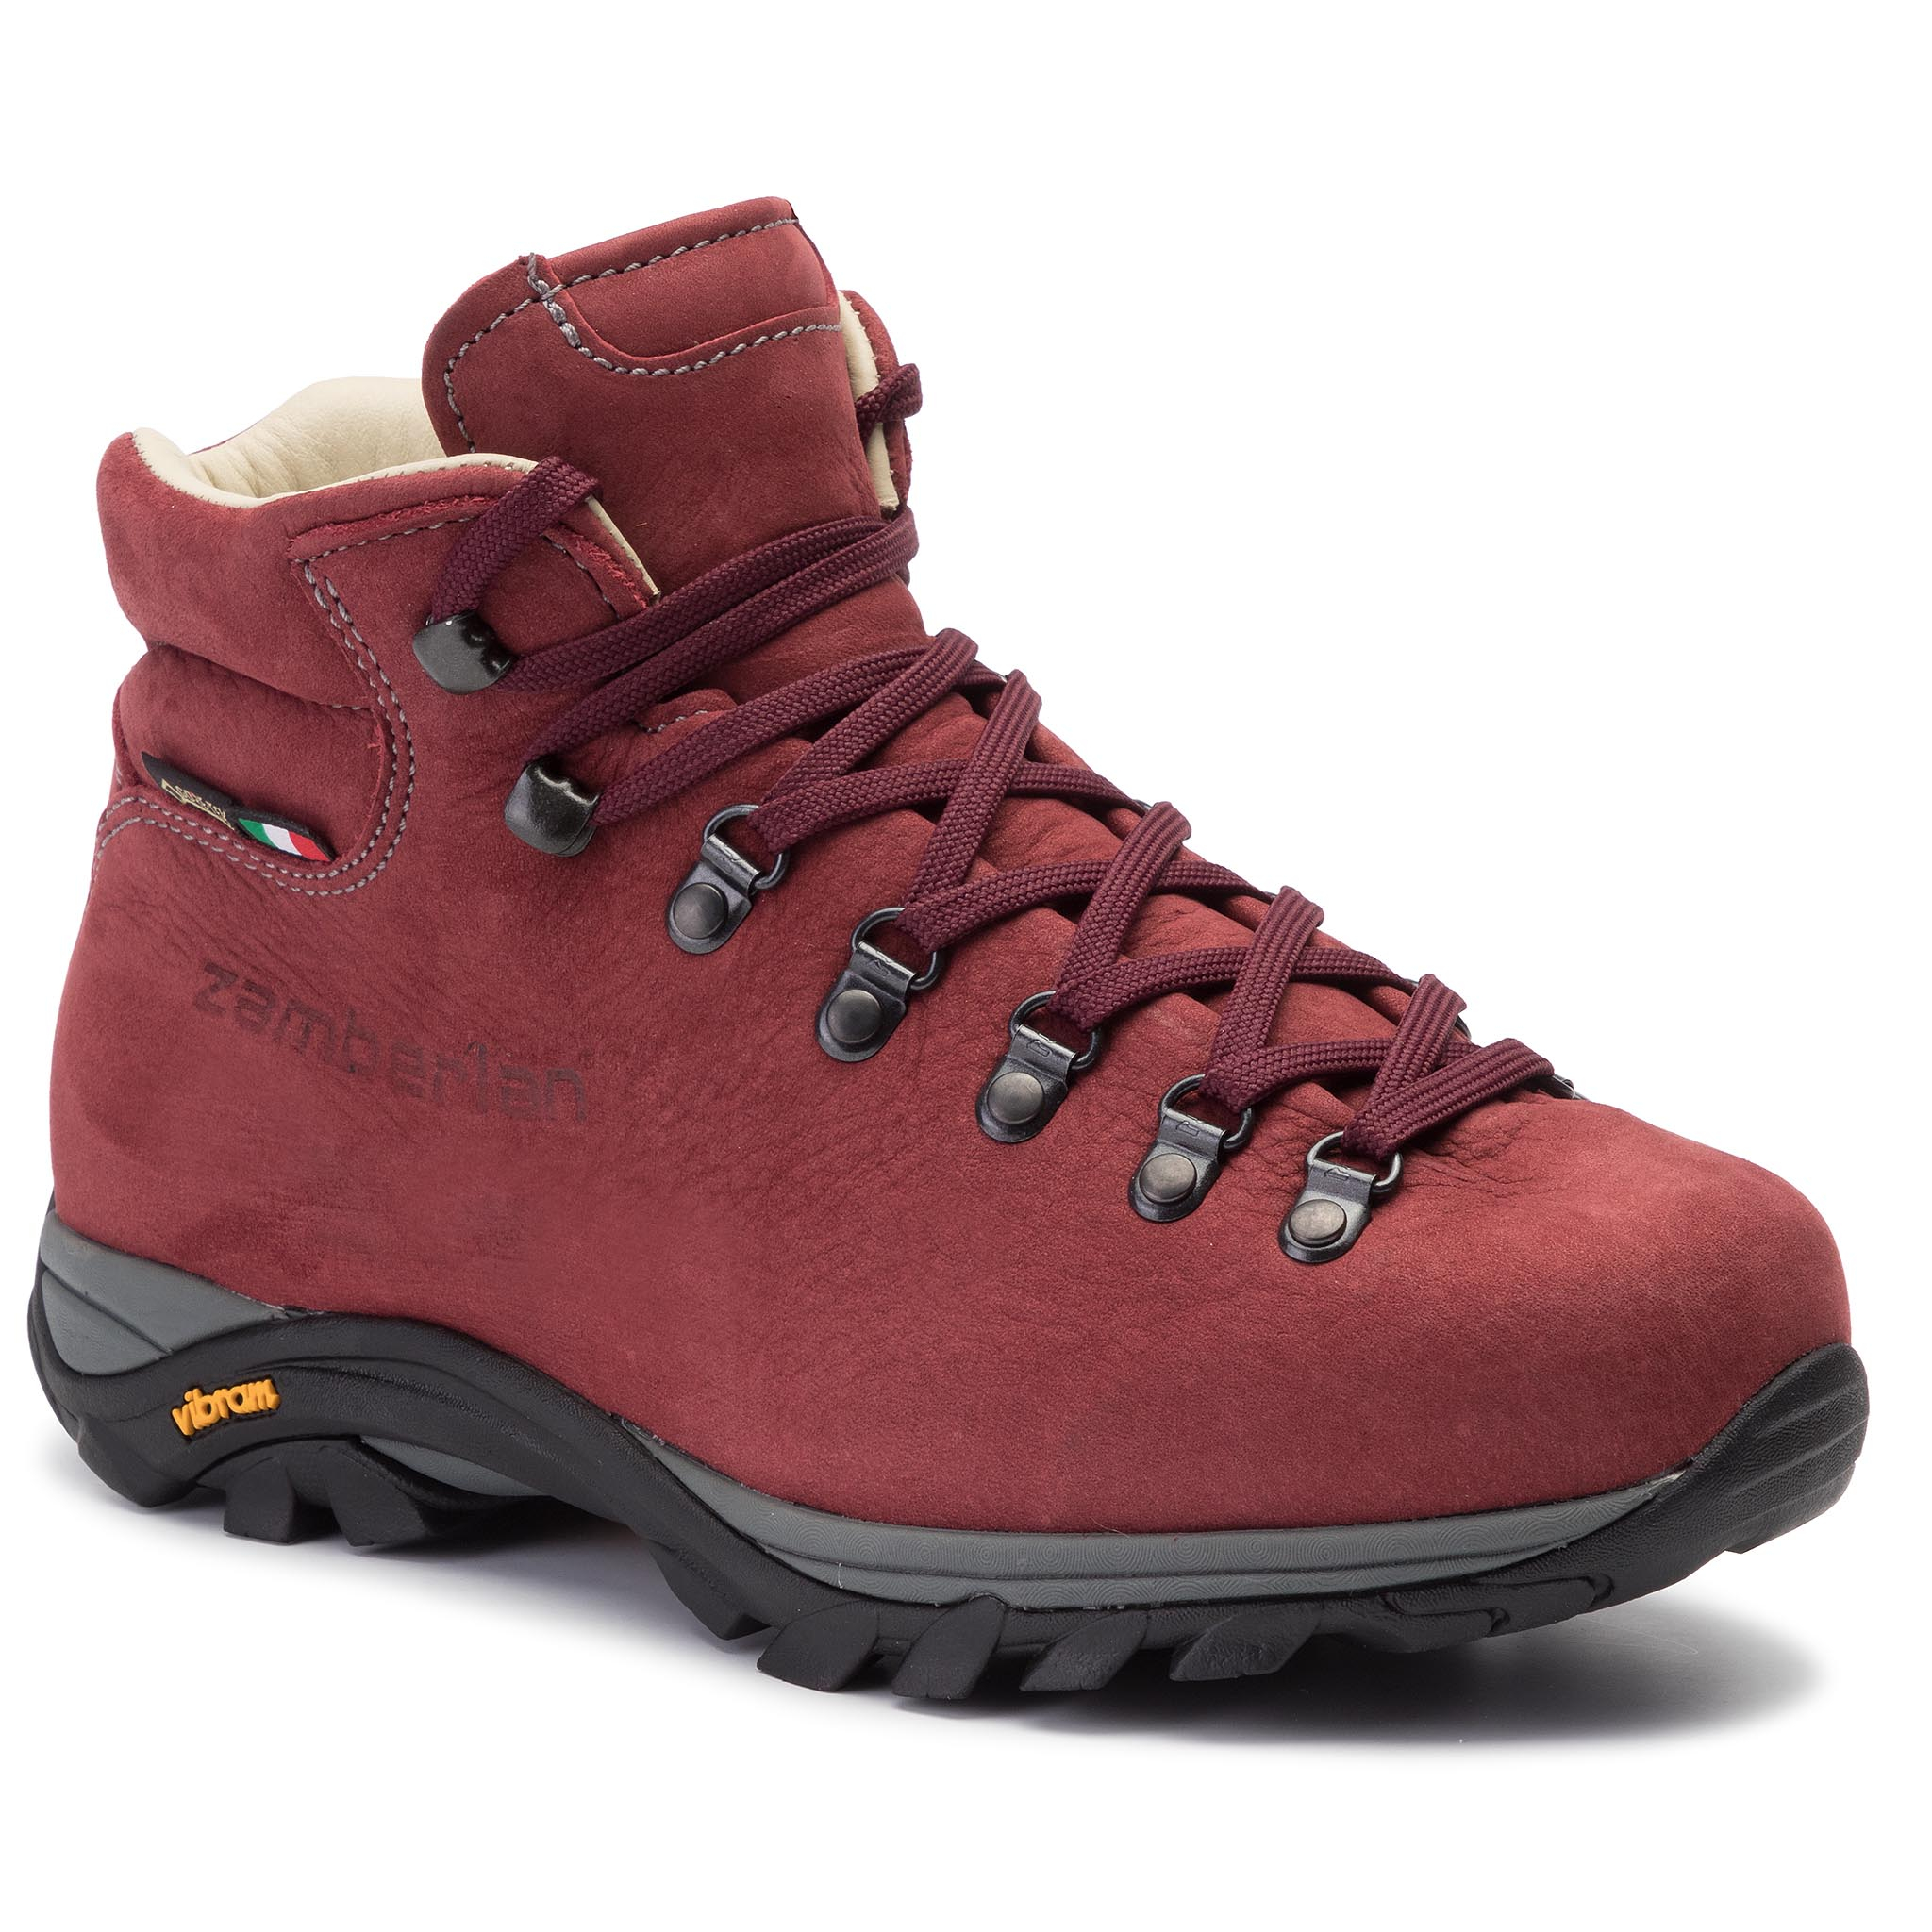 Trekkings Zamberlan - 320 N. Trail L. Evo Gtx Wns Gore-Tex Purple imagine epantofi.ro 2021